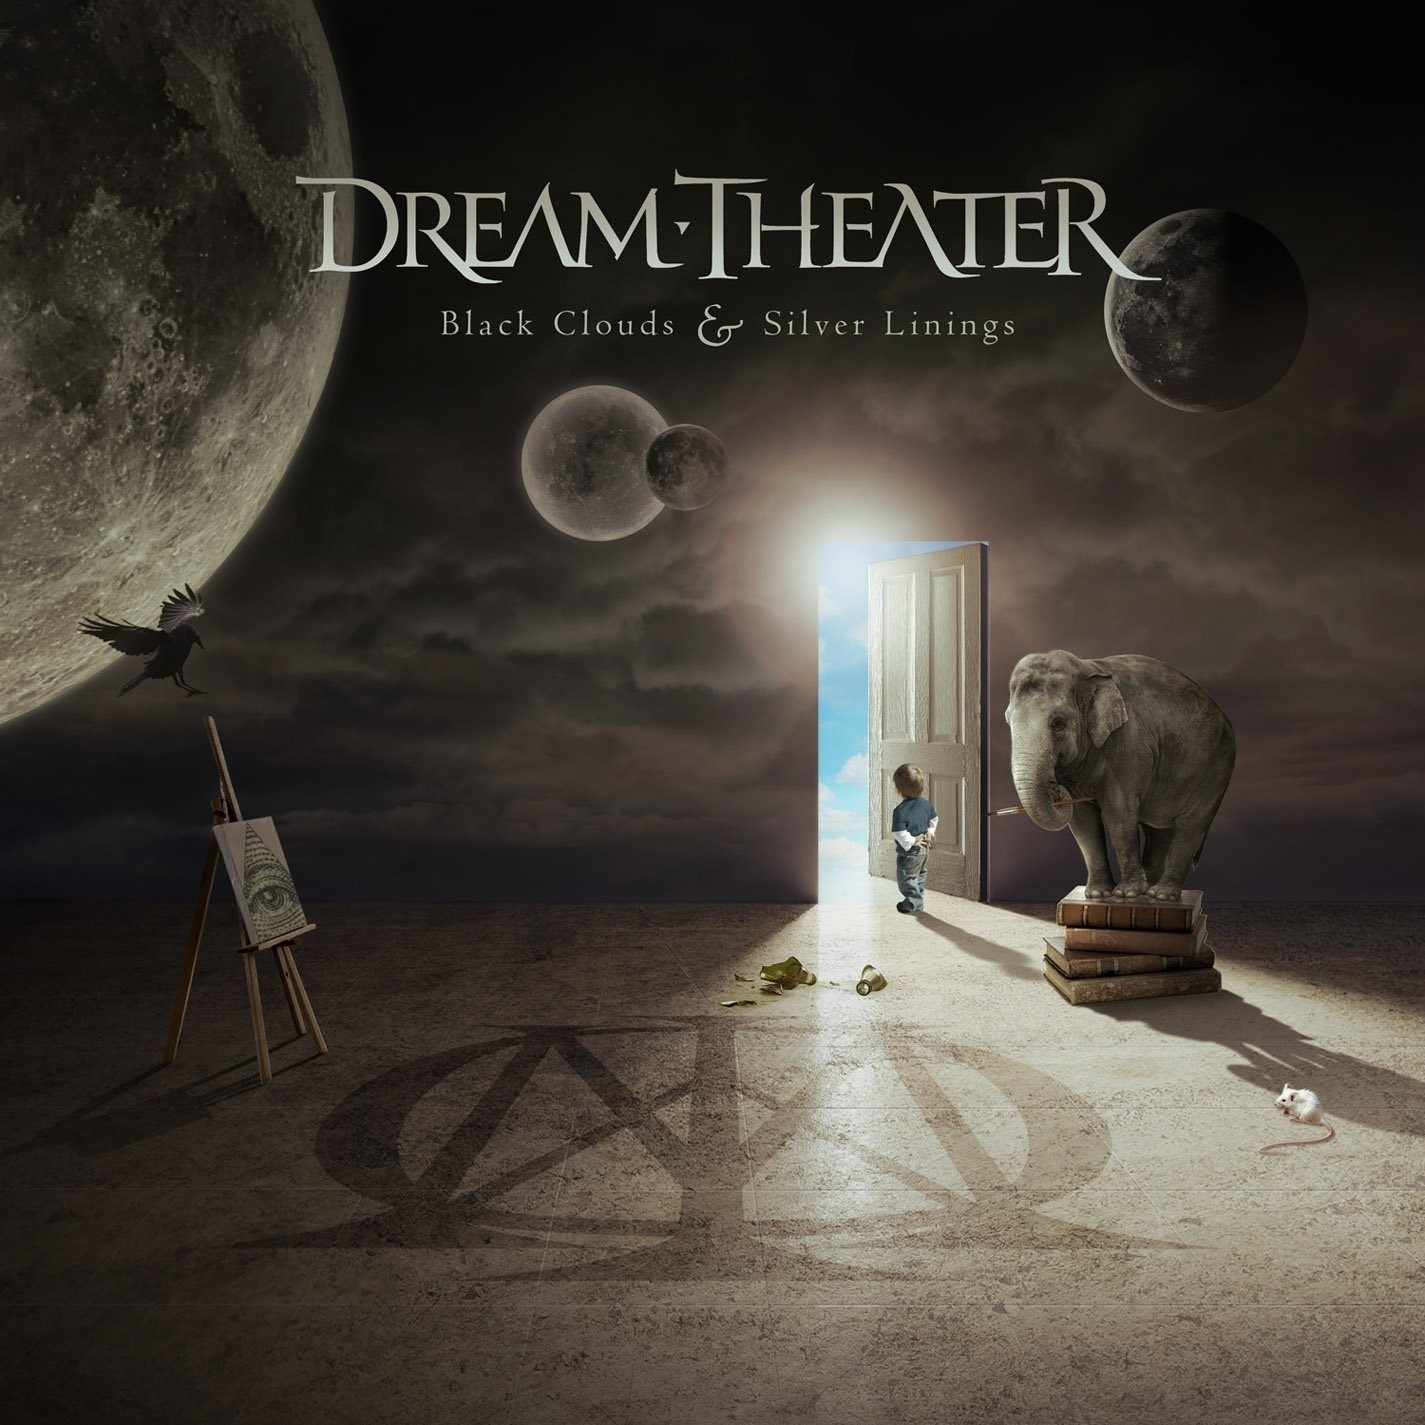 Dream Theater: Black Clouds & Silver Linings (2009) Book Cover